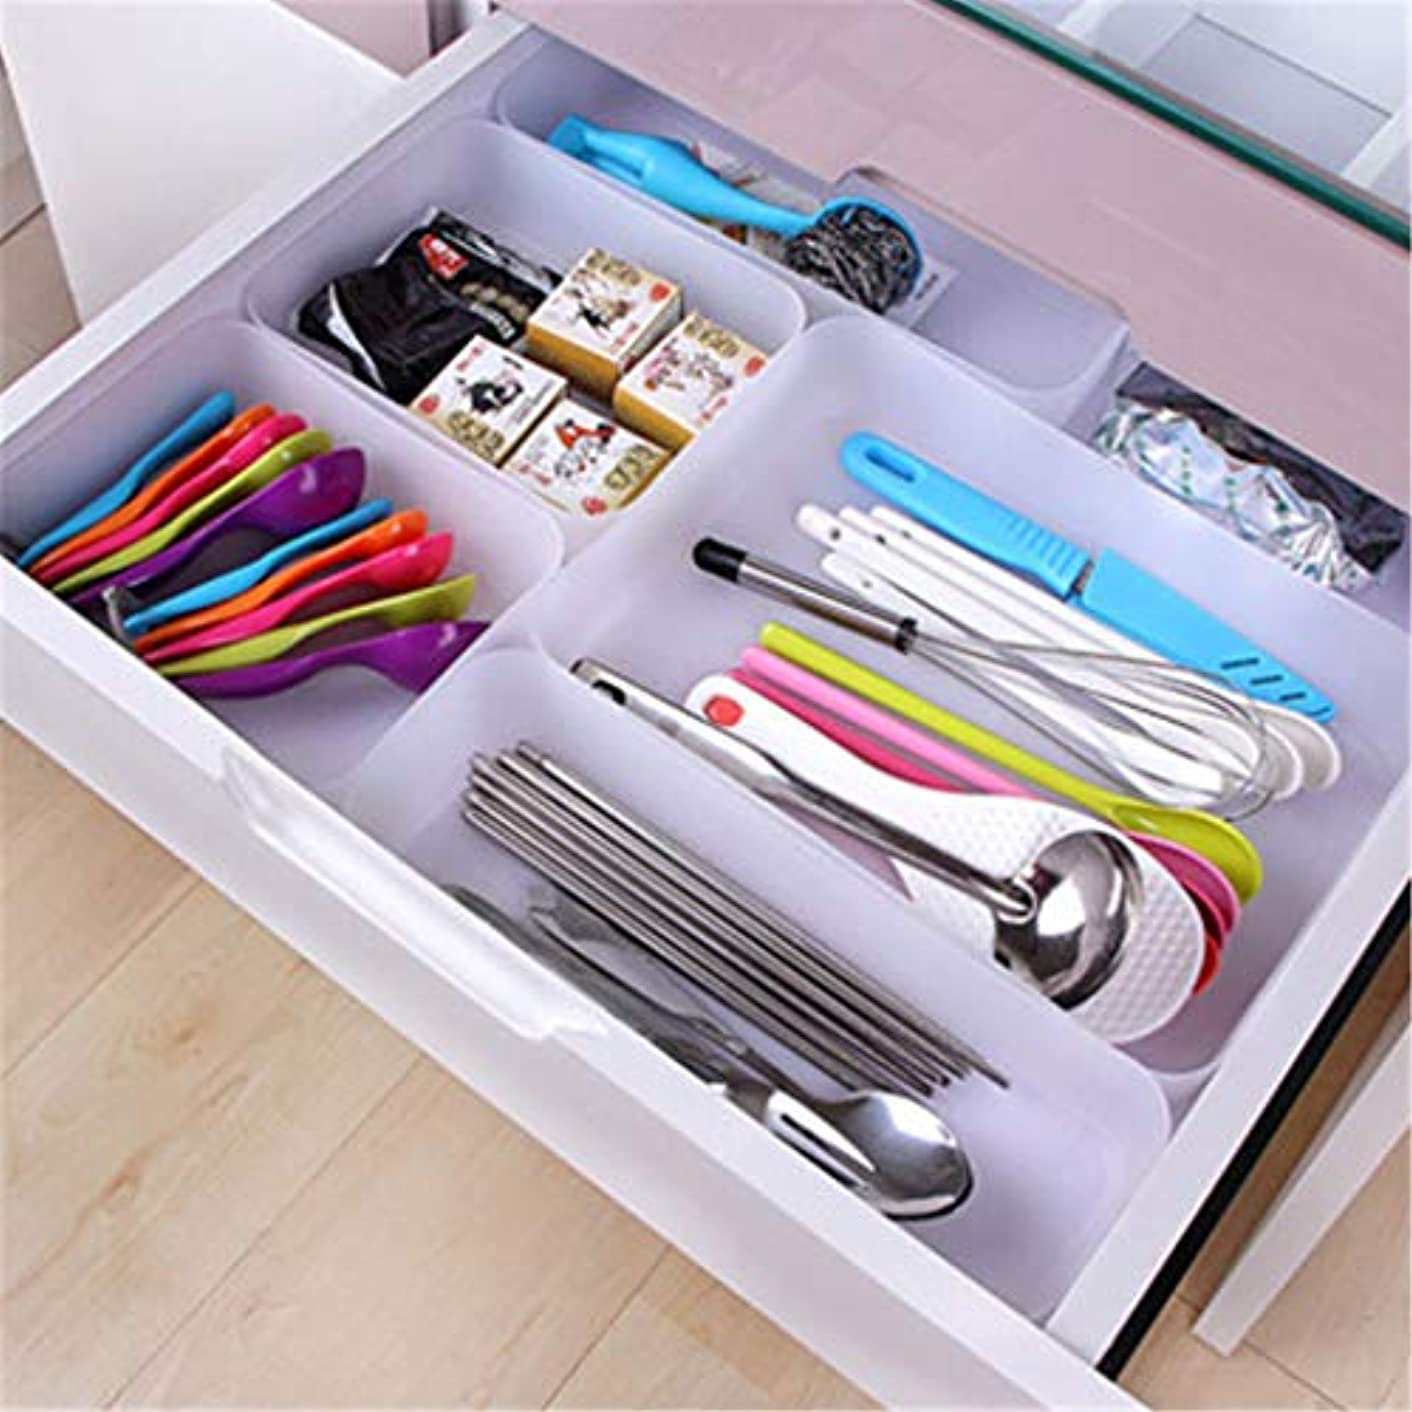 Desk Drawer Organizer Tray Dividers,Quaanti Adjustable Drawer Kitchen Cutlery Divider Case Makeup Storage Box Home Organizer for Stationery/Makeup/Cutlery/Everything Small Office Supplies (M)